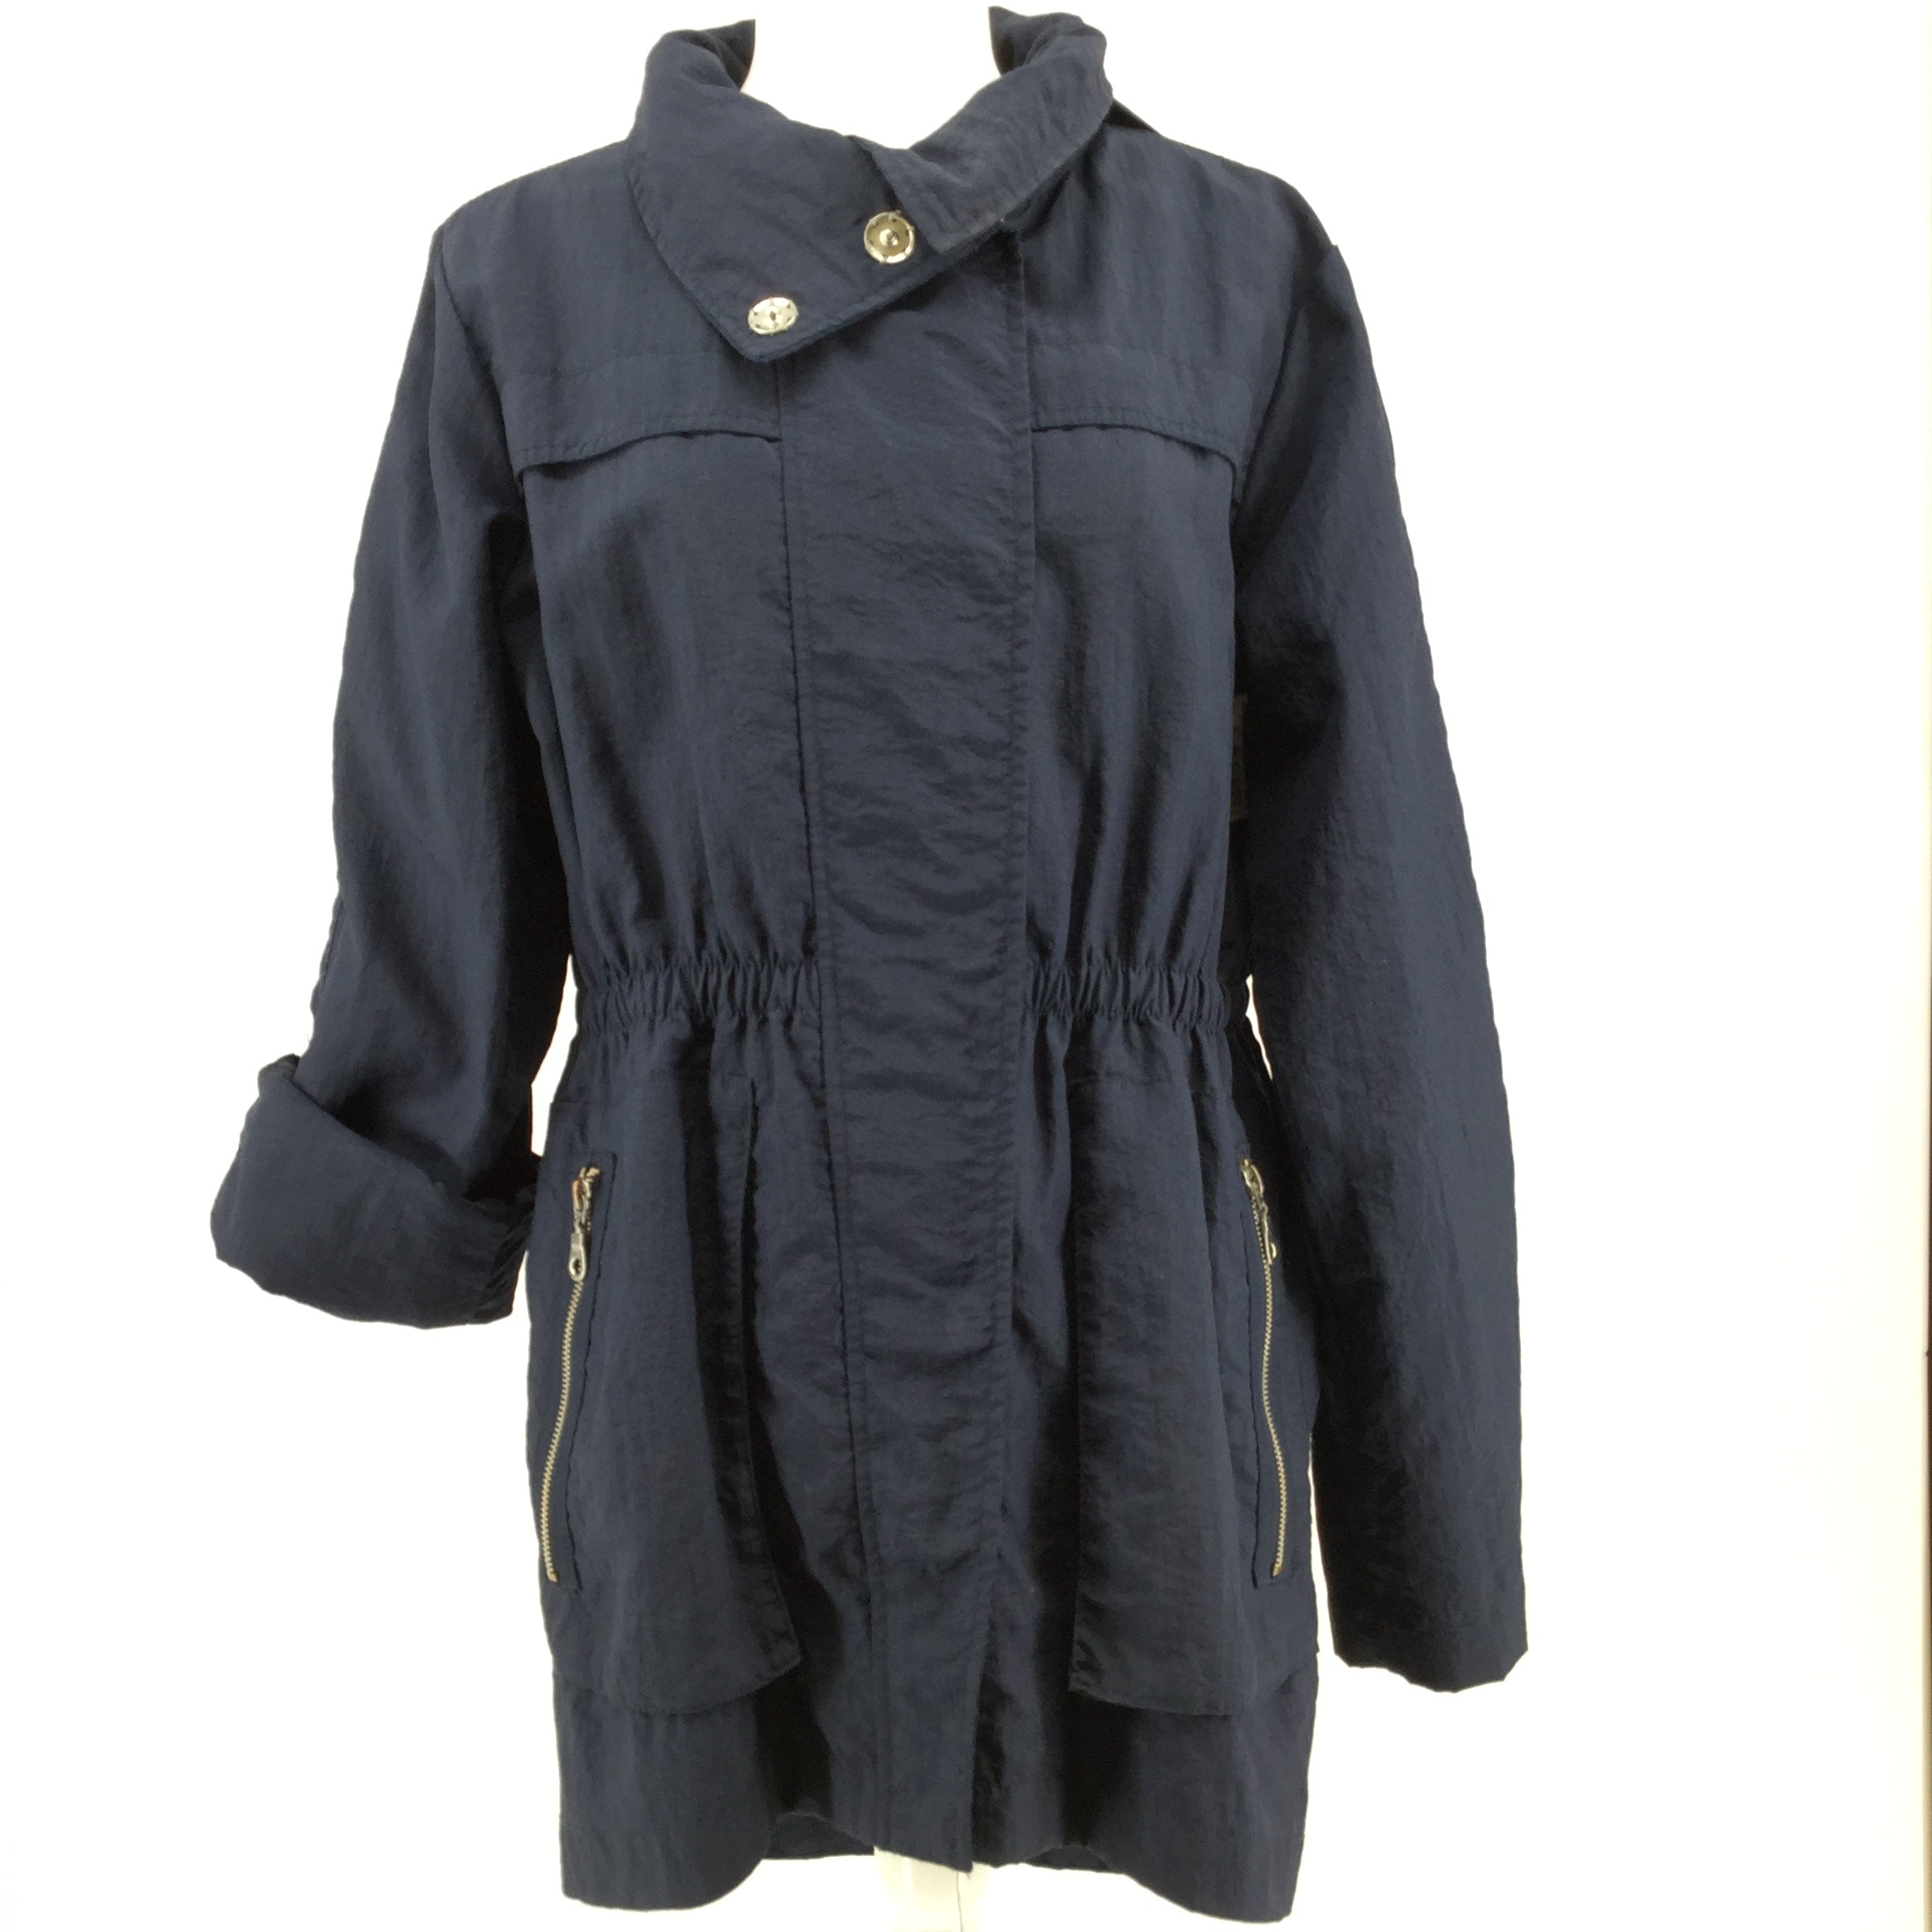 APPAREL,OUTERWEAR - NAVY ZIP-UP AND SNAP FRONT JACKET WITH HOOD.